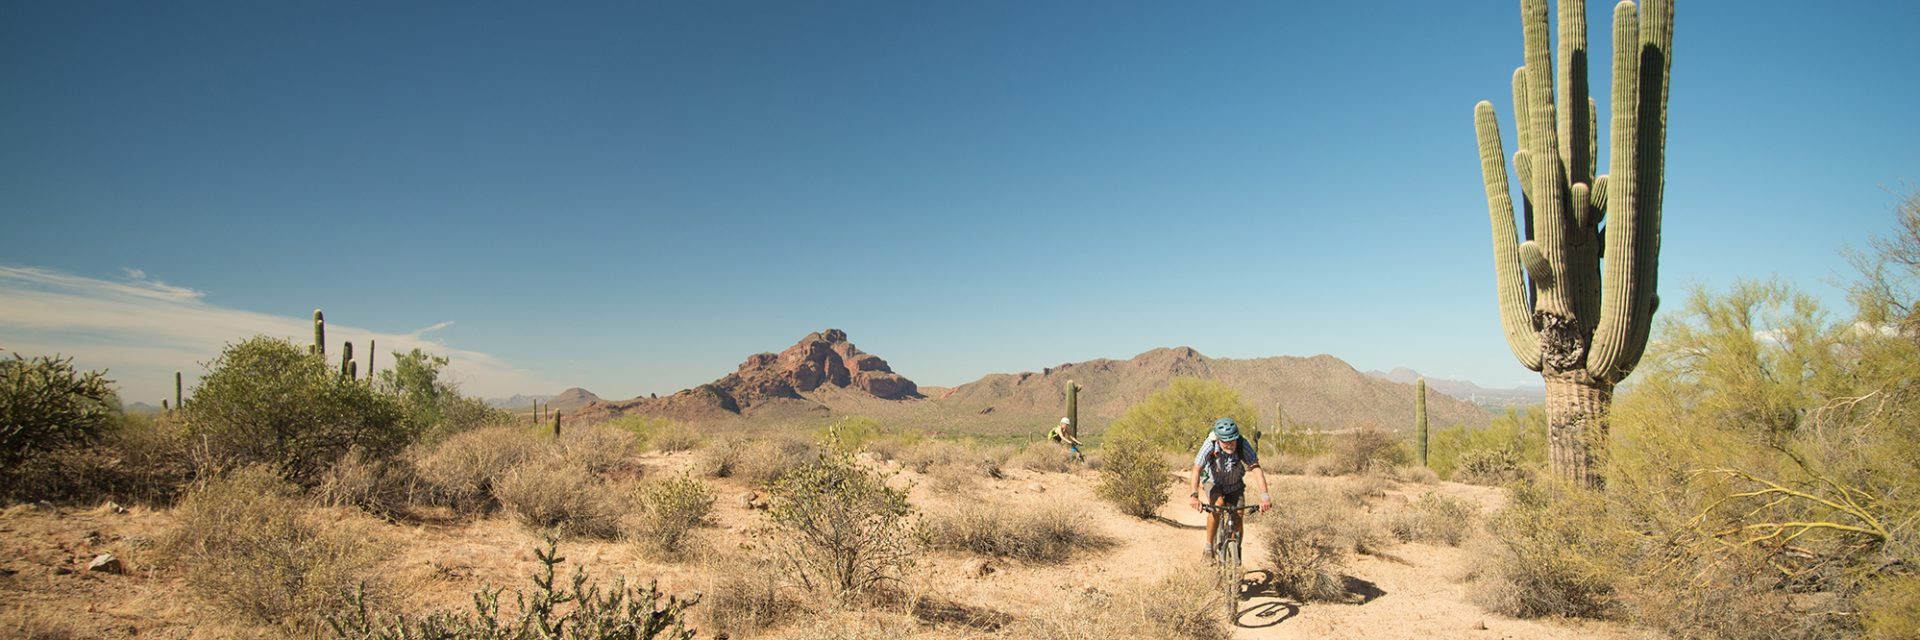 Midway up the Wild Horse Trail, Arizona's Sonoran Desert guided mtb tour near Phoenix, AZ